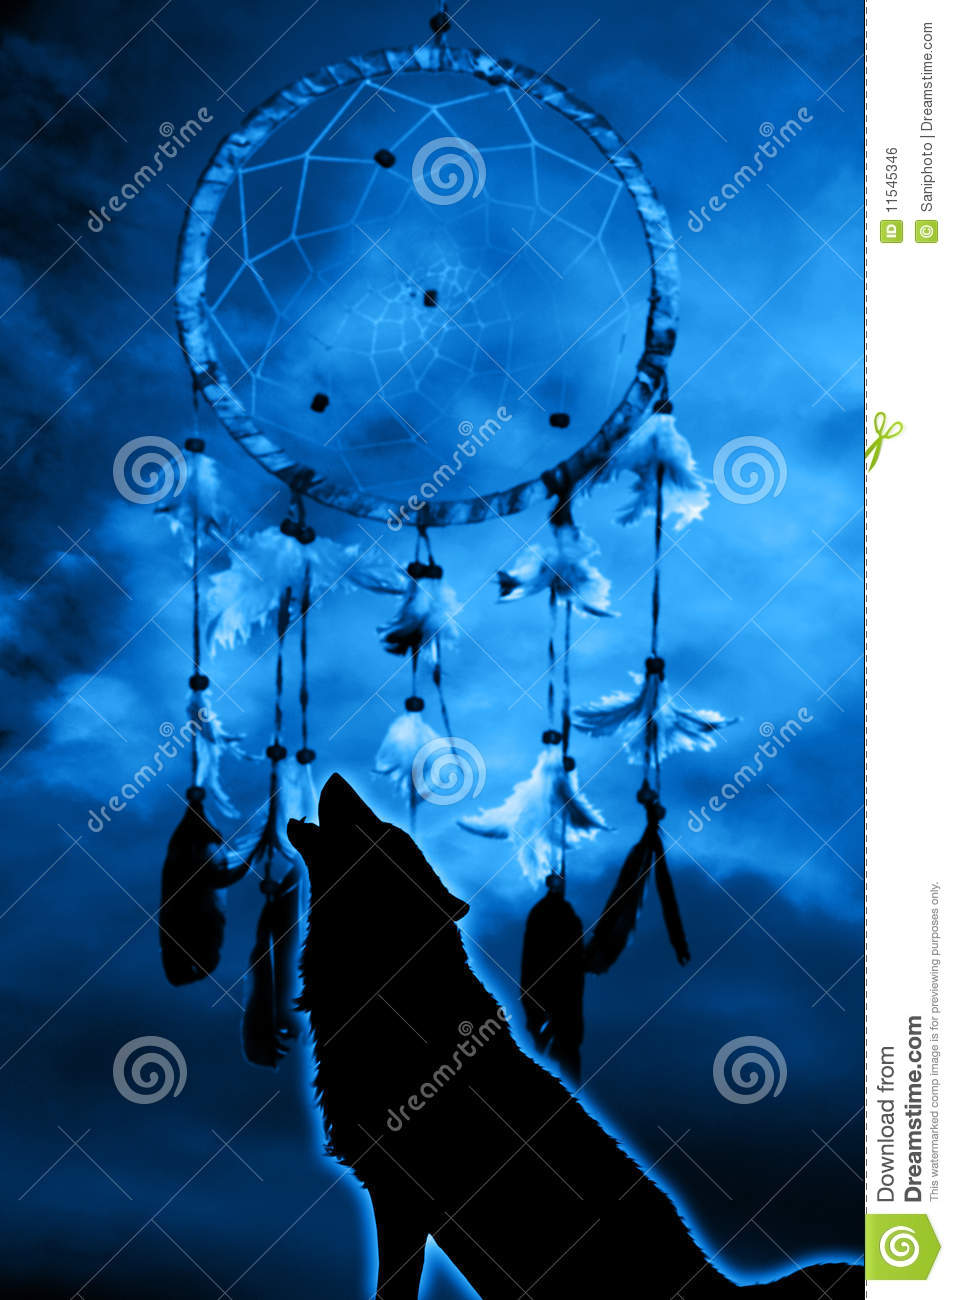 Cute Dreamcatcher Wallpaper Wolf And Dream Catcher Stock Illustration Illustration Of